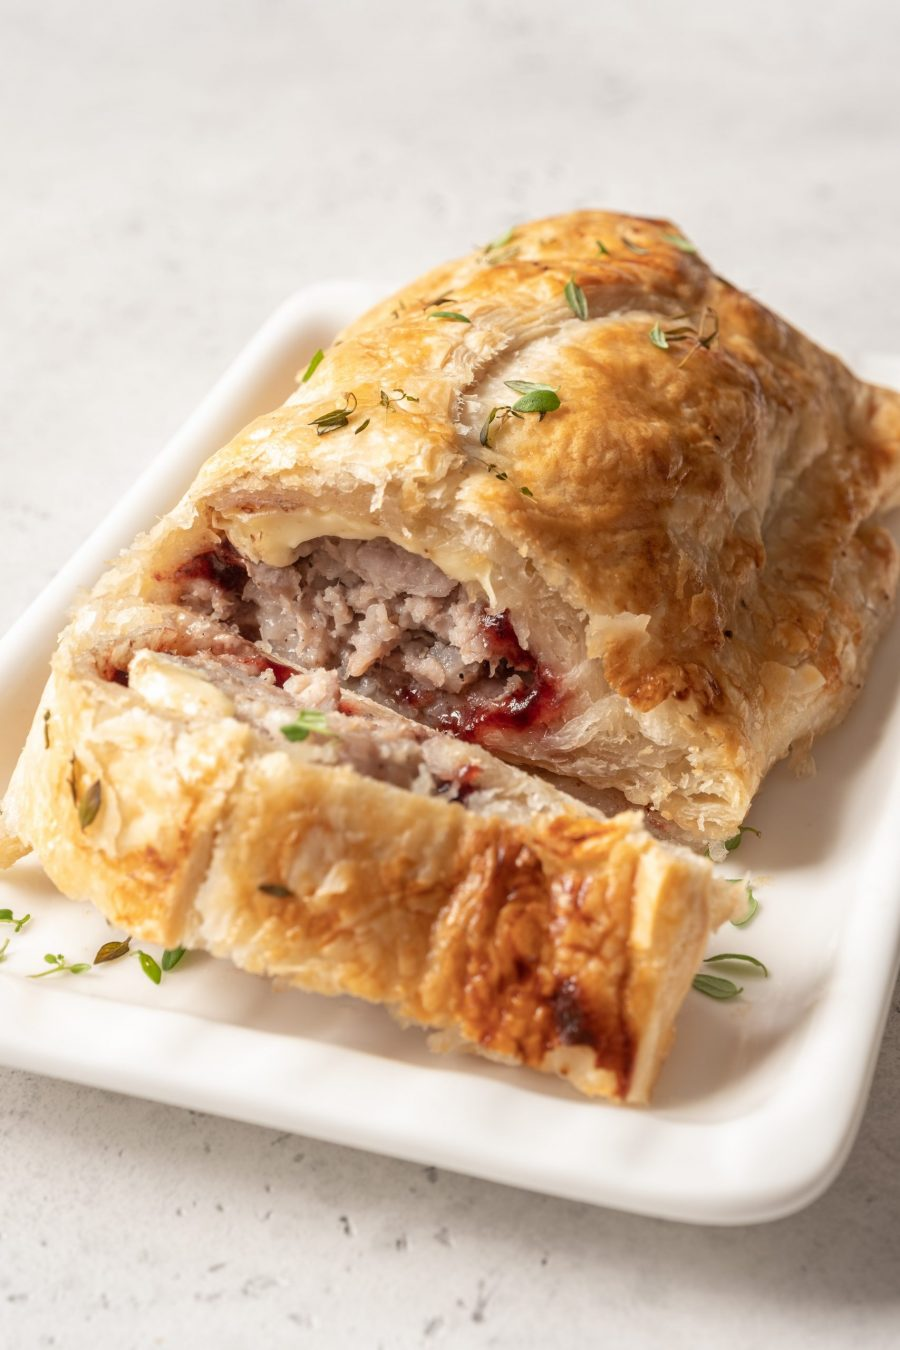 baked-cranberry-cannabis-puffed-pastry